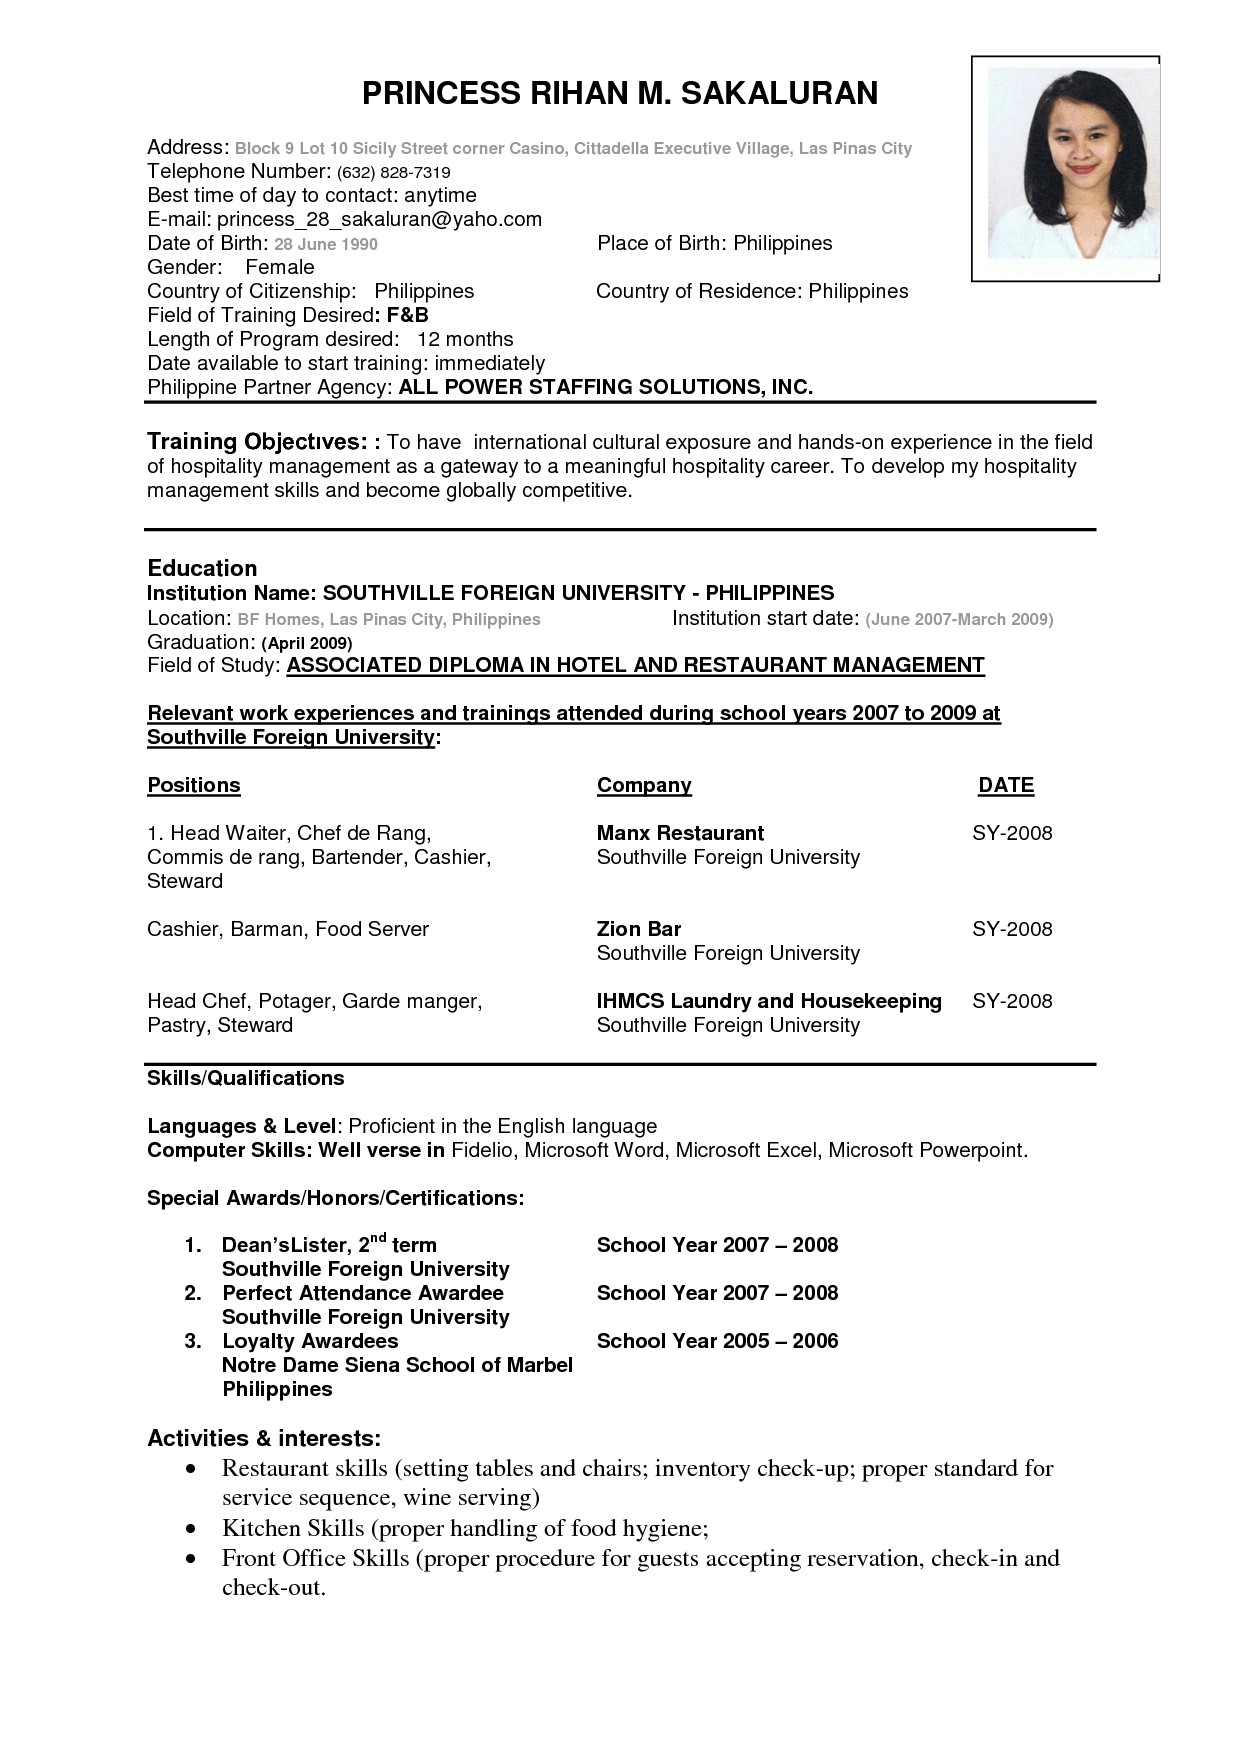 a perfect resume format resume format perfect resume and job